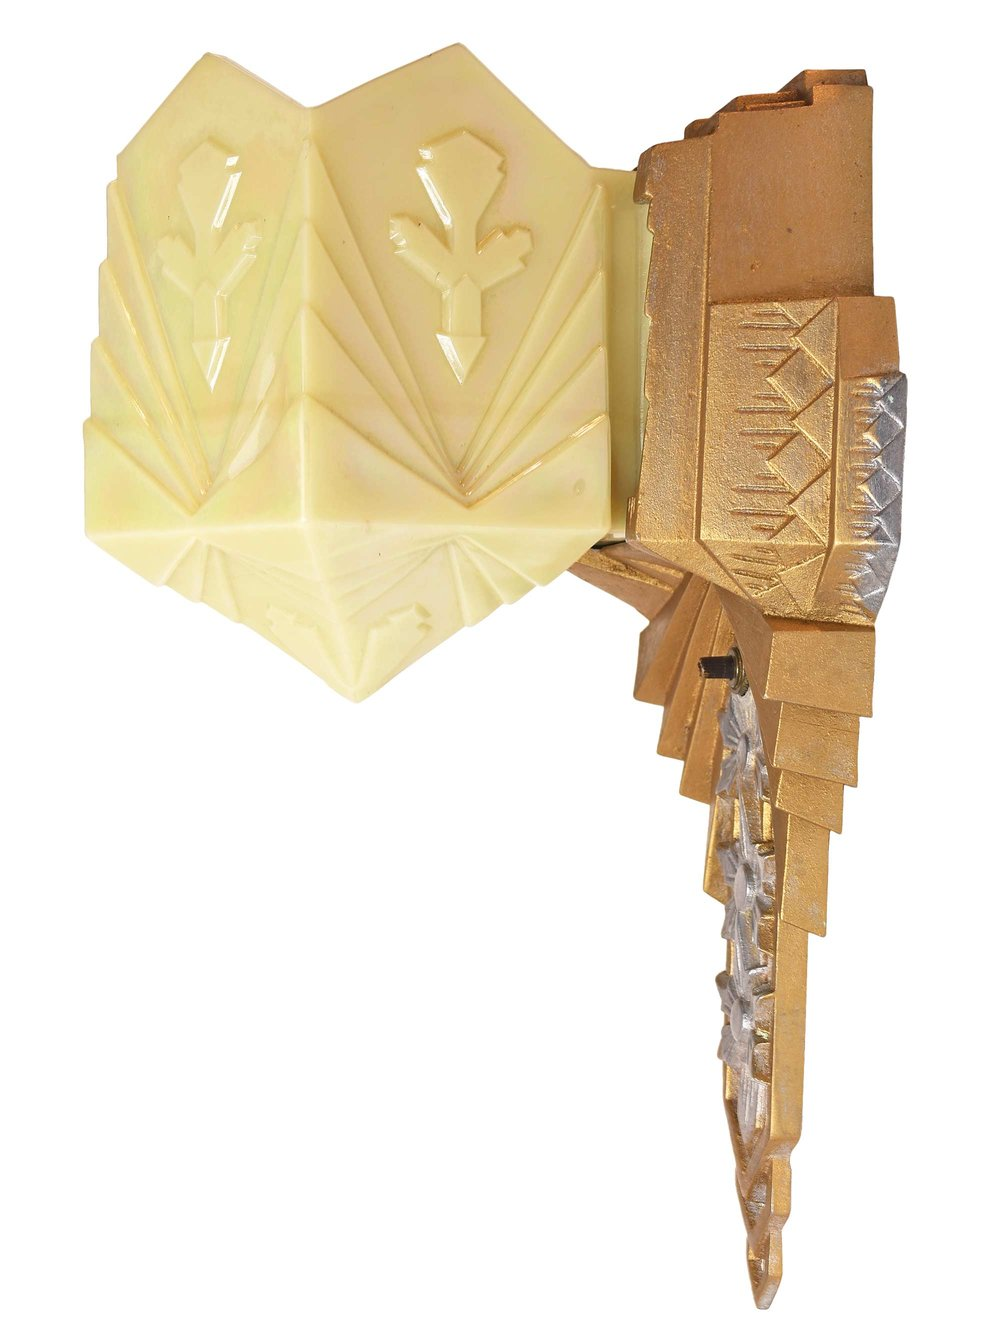 46651-art-deco-sconce-with-molded-custard-glass-side.jpg